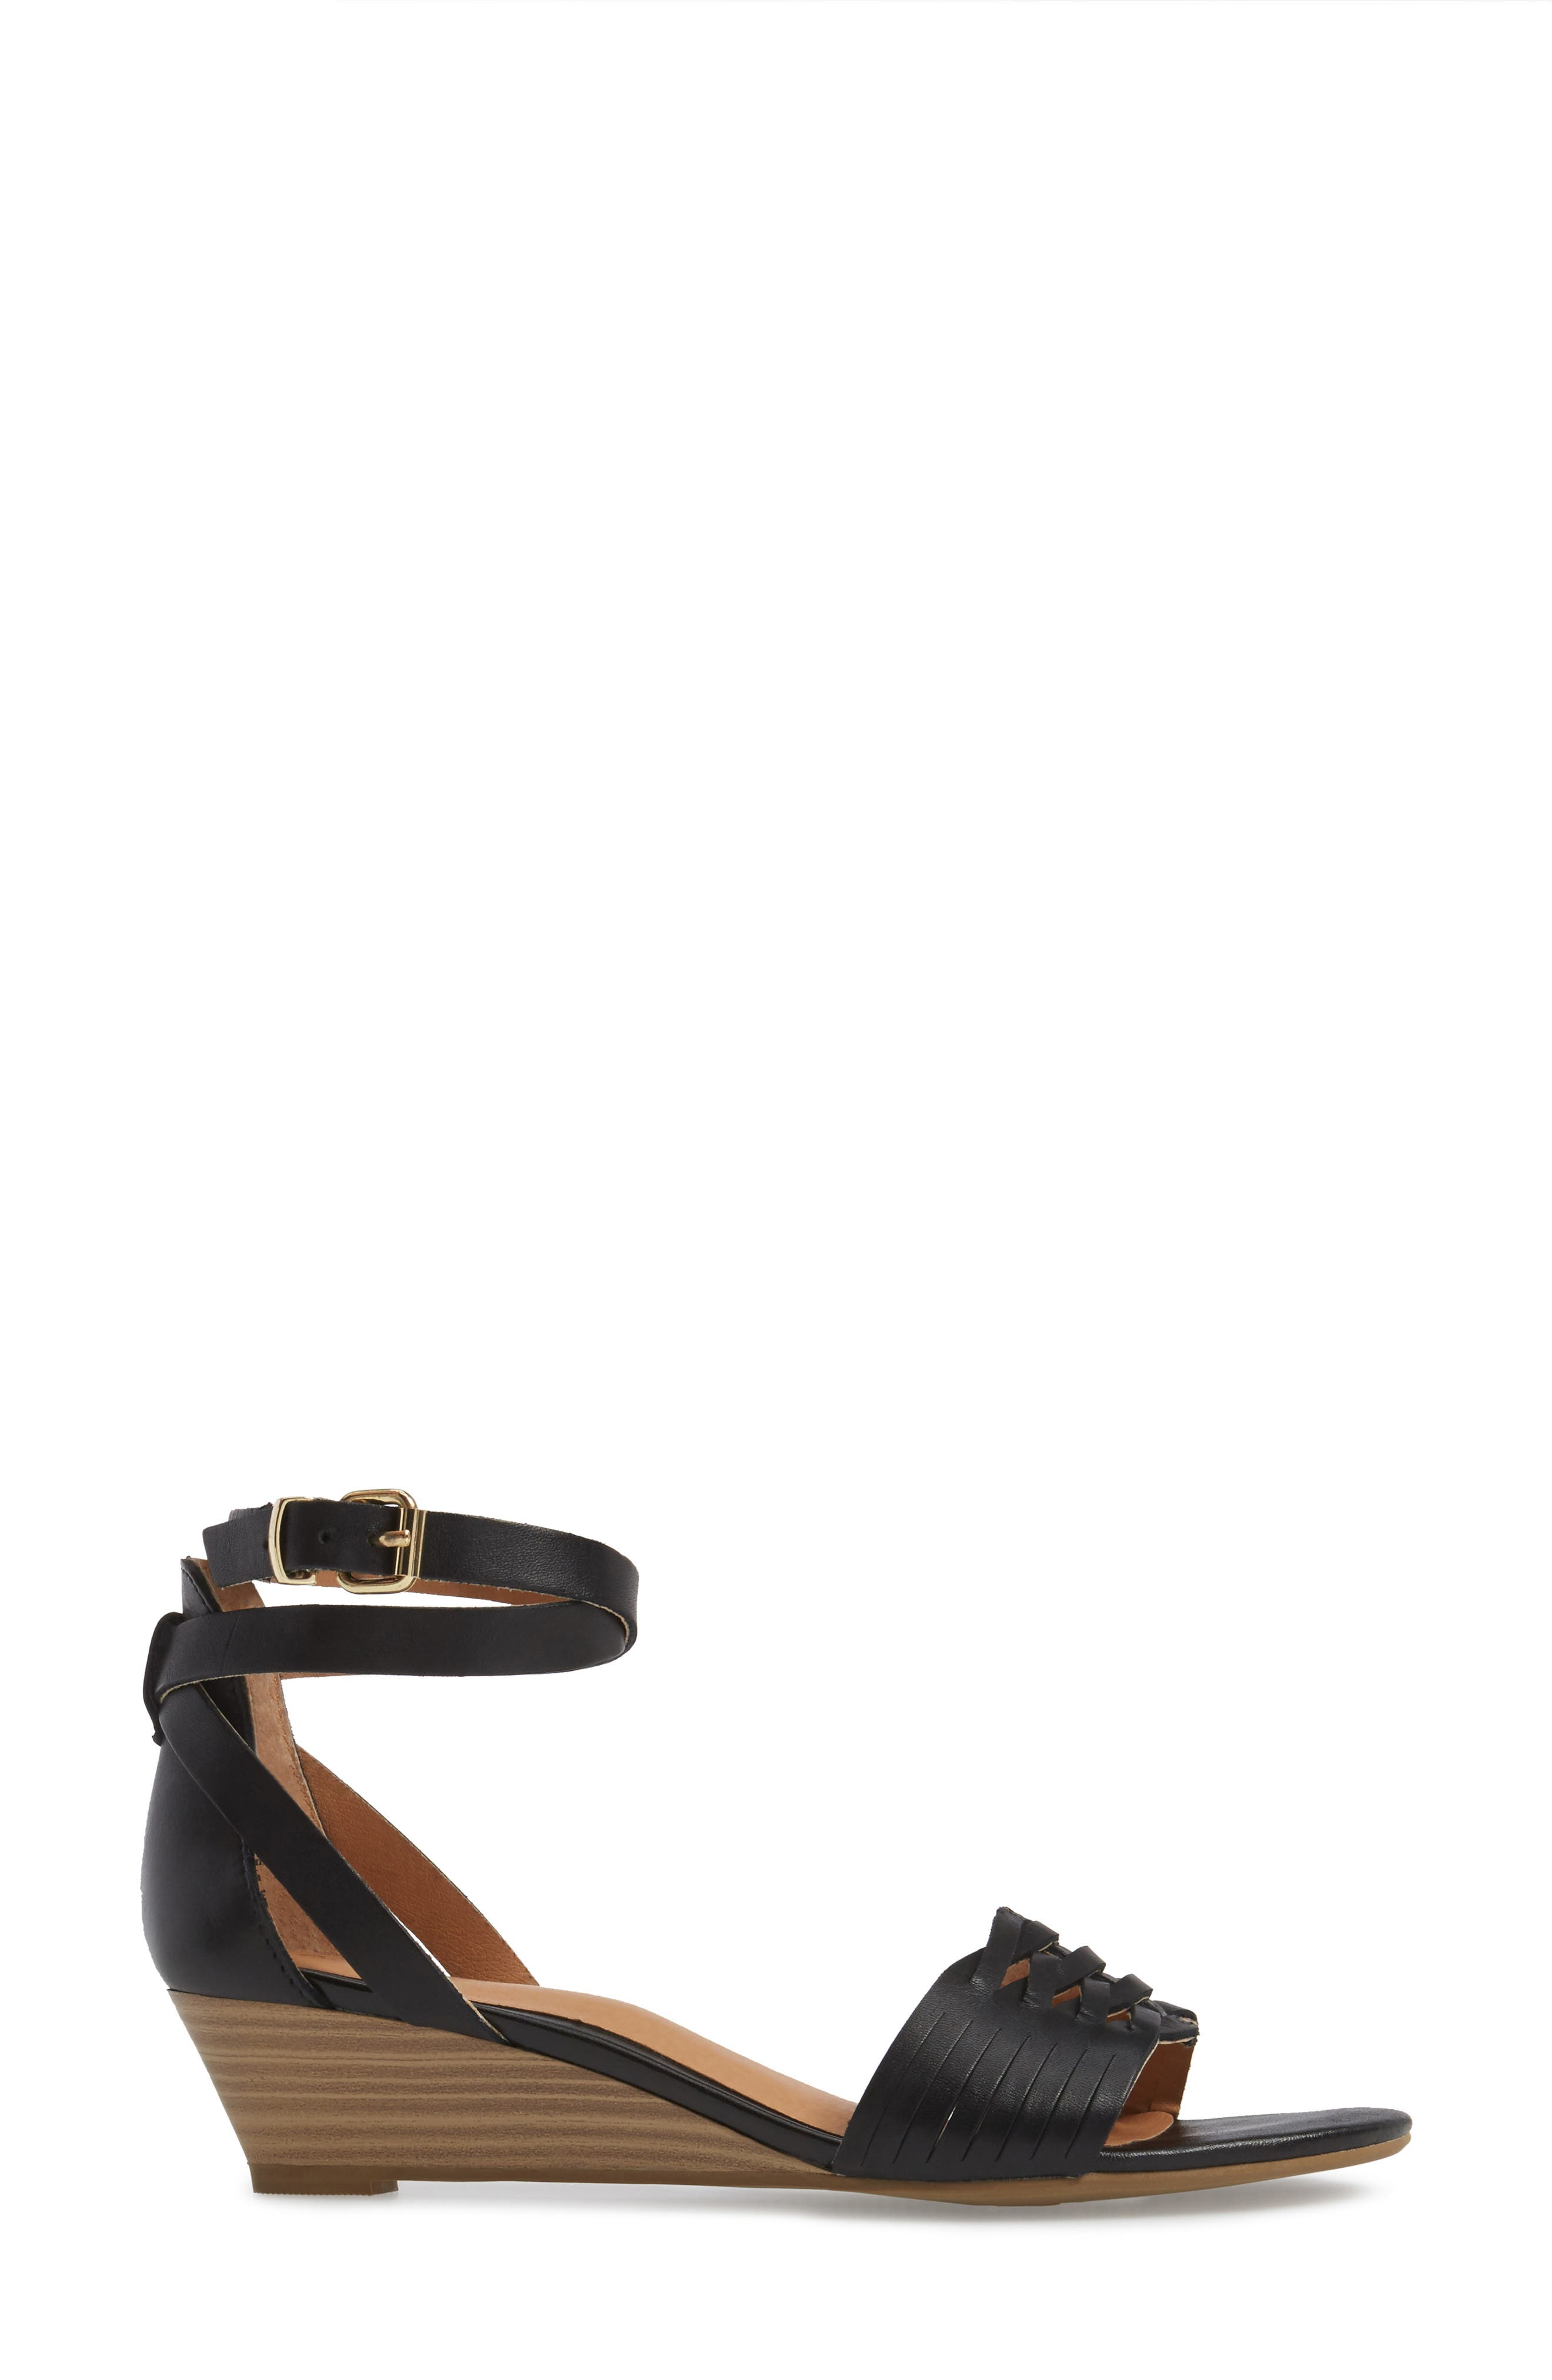 Sincere Wraparound Wedge Sandal,                             Alternate thumbnail 5, color,